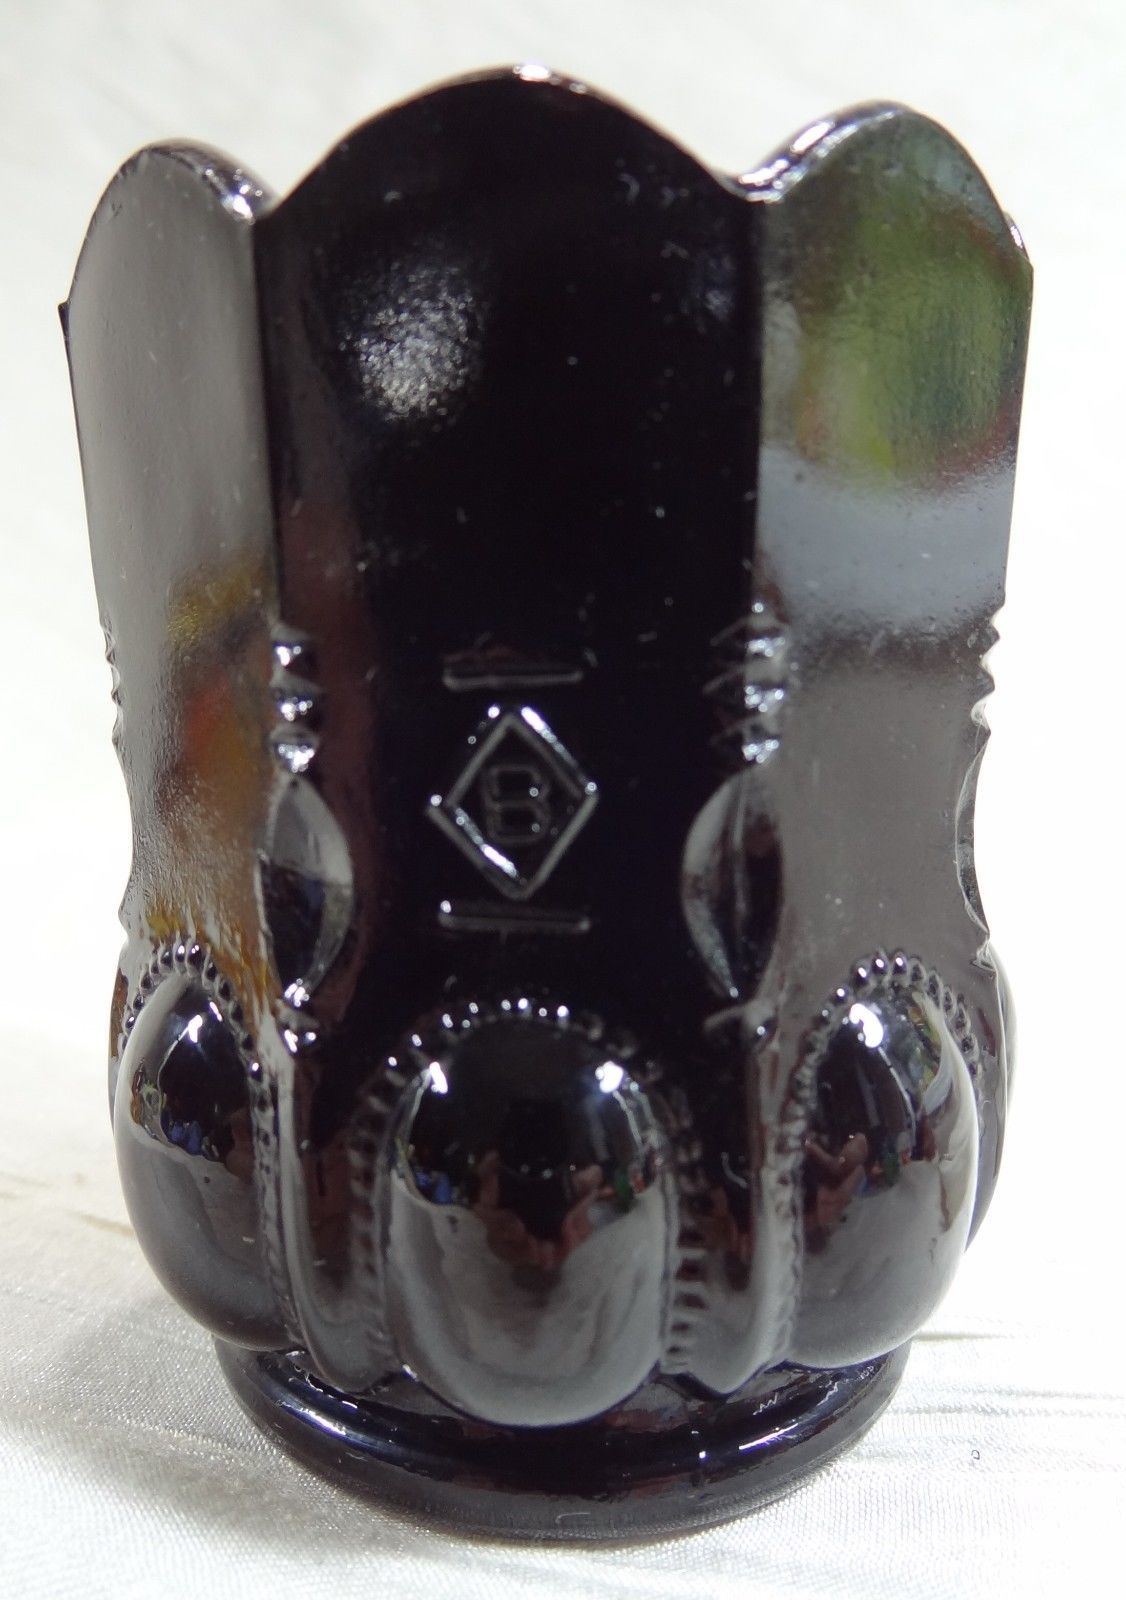 Primary image for Beaded Oval Toothpick Holder Classic Black Glass 10-18-1991 Ebony